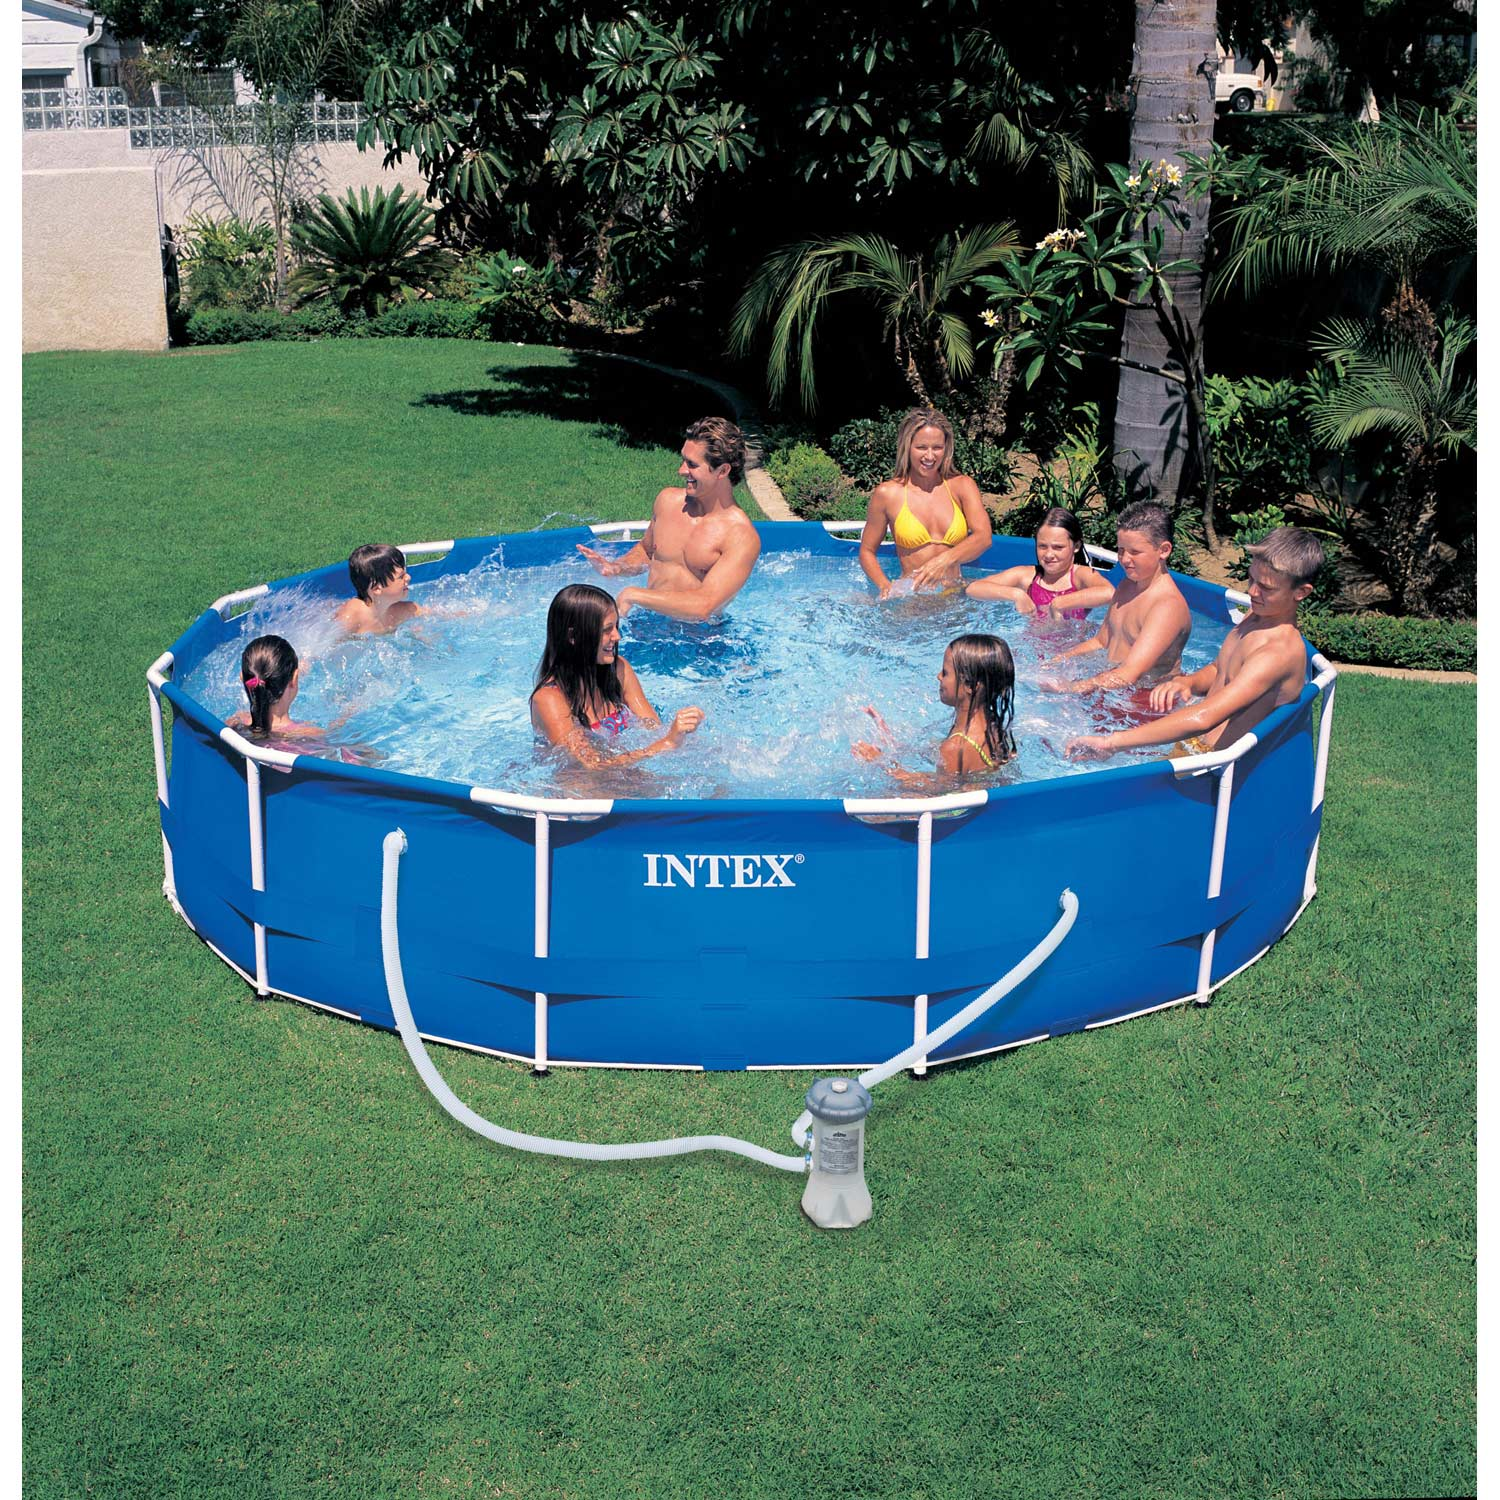 Piscine hors sol autoportante tubulaire metal frame intex for Piscine tole hors sol